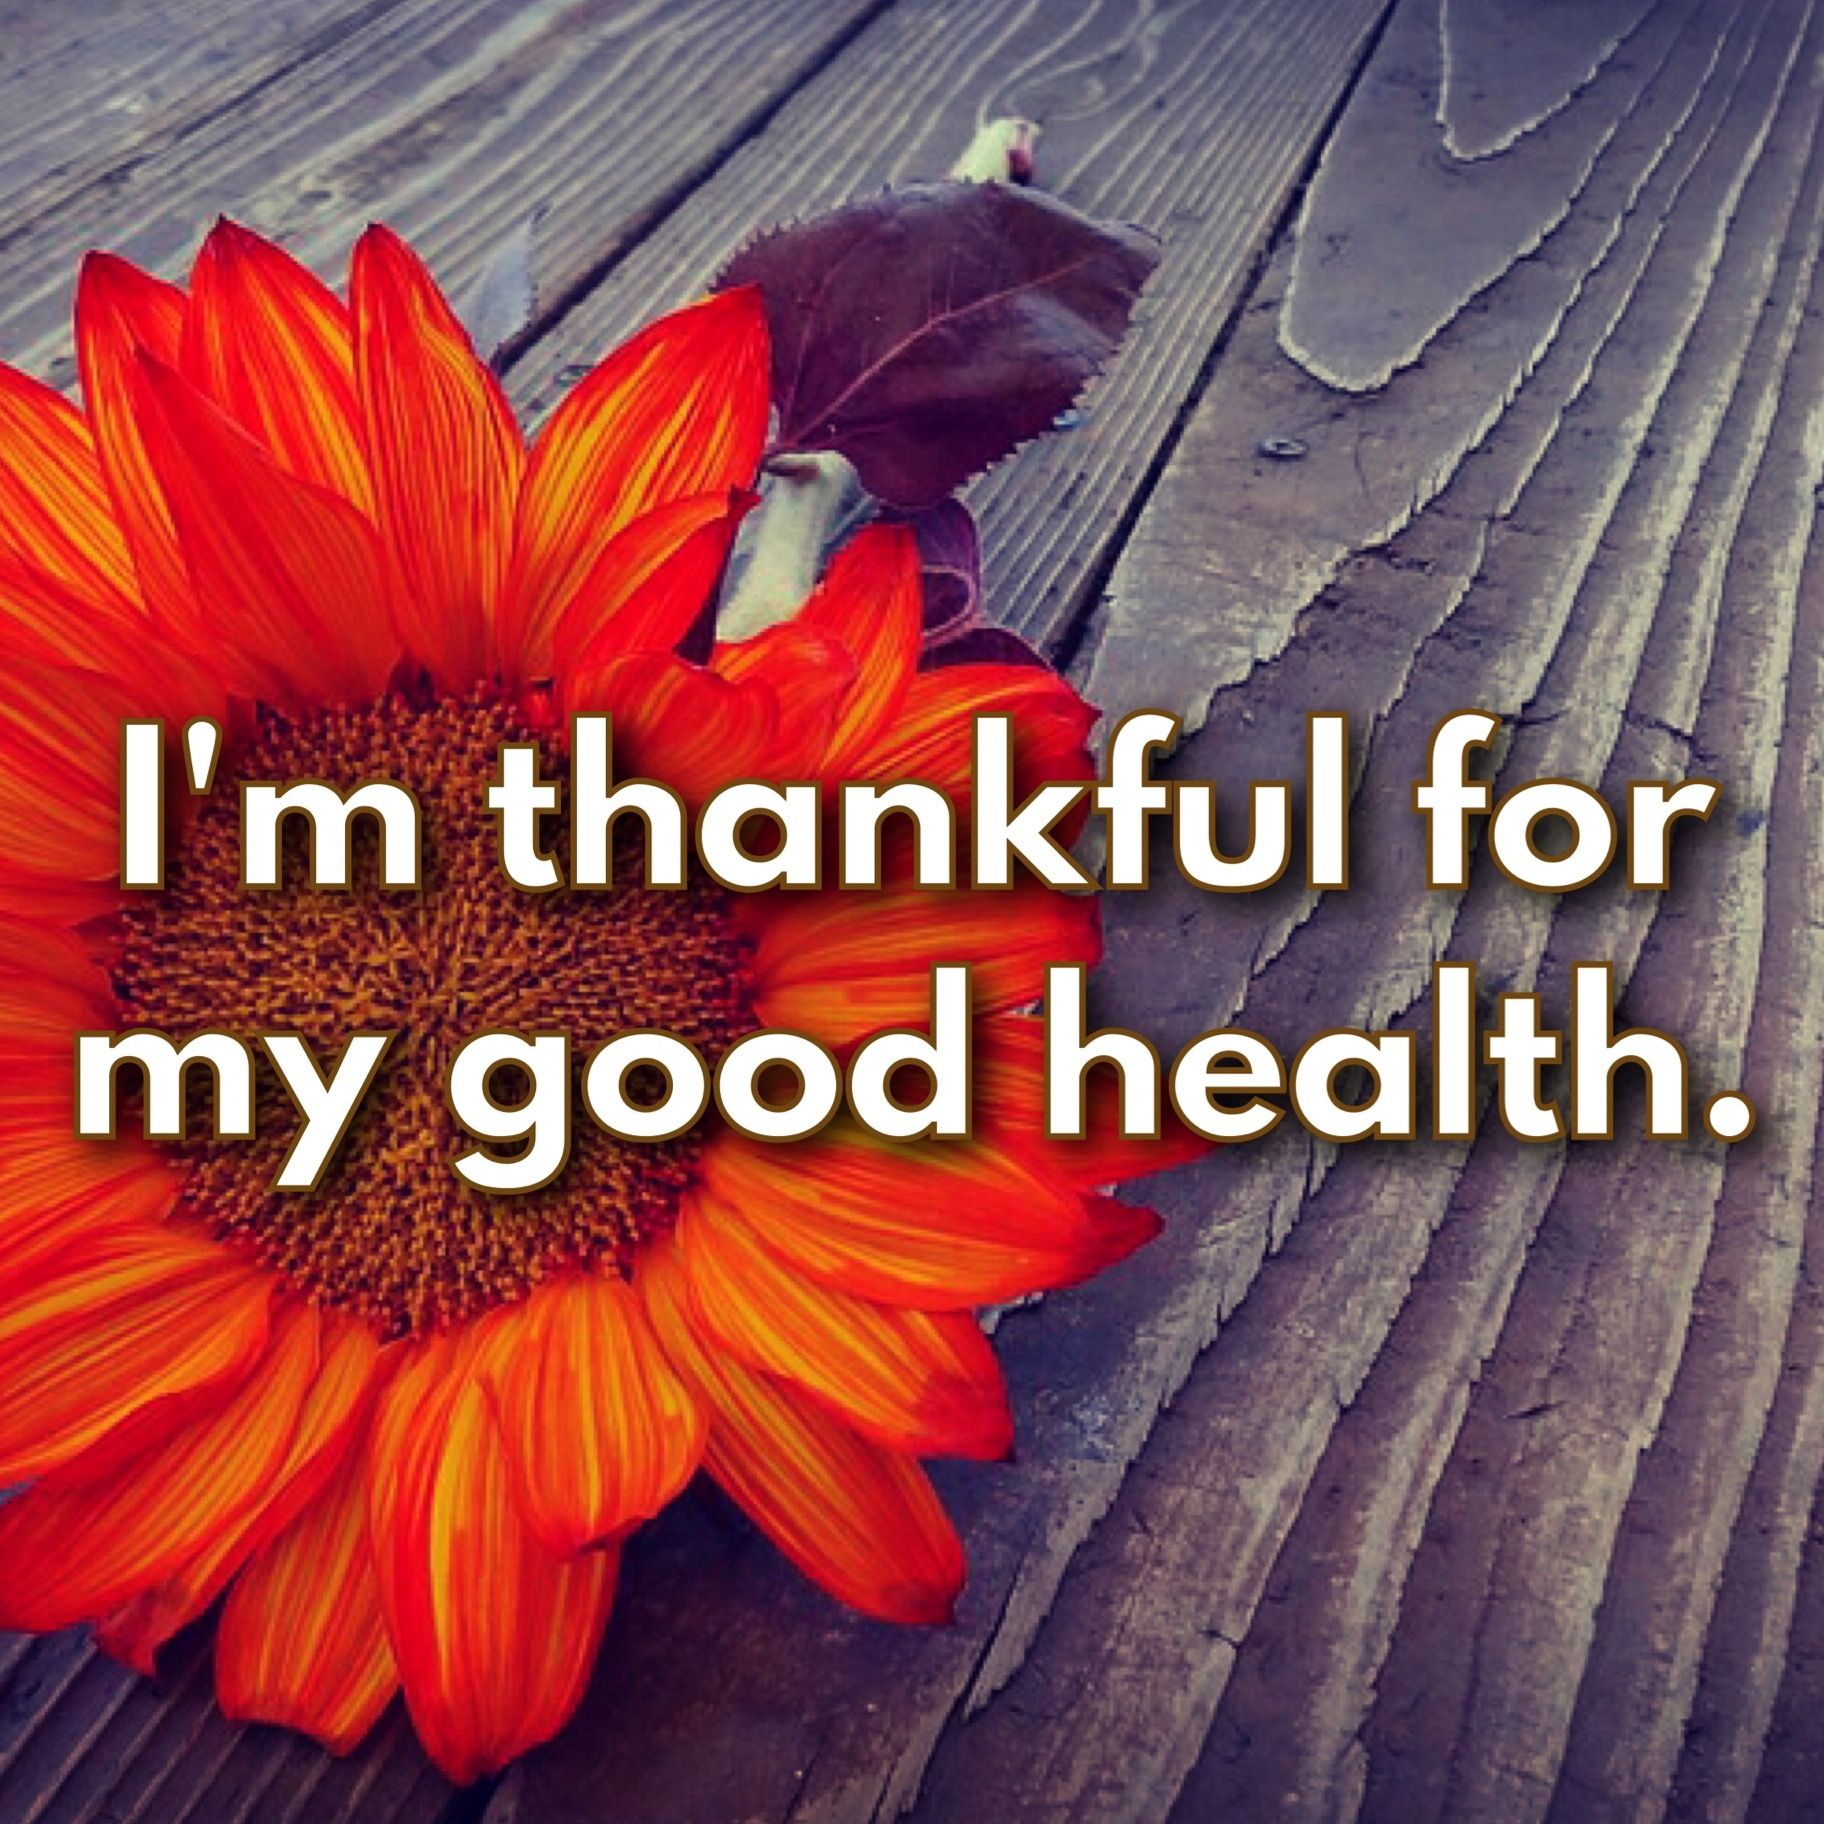 I'm so very thankful every day for my good health! I know it's a blessing and I don't take it for granted.